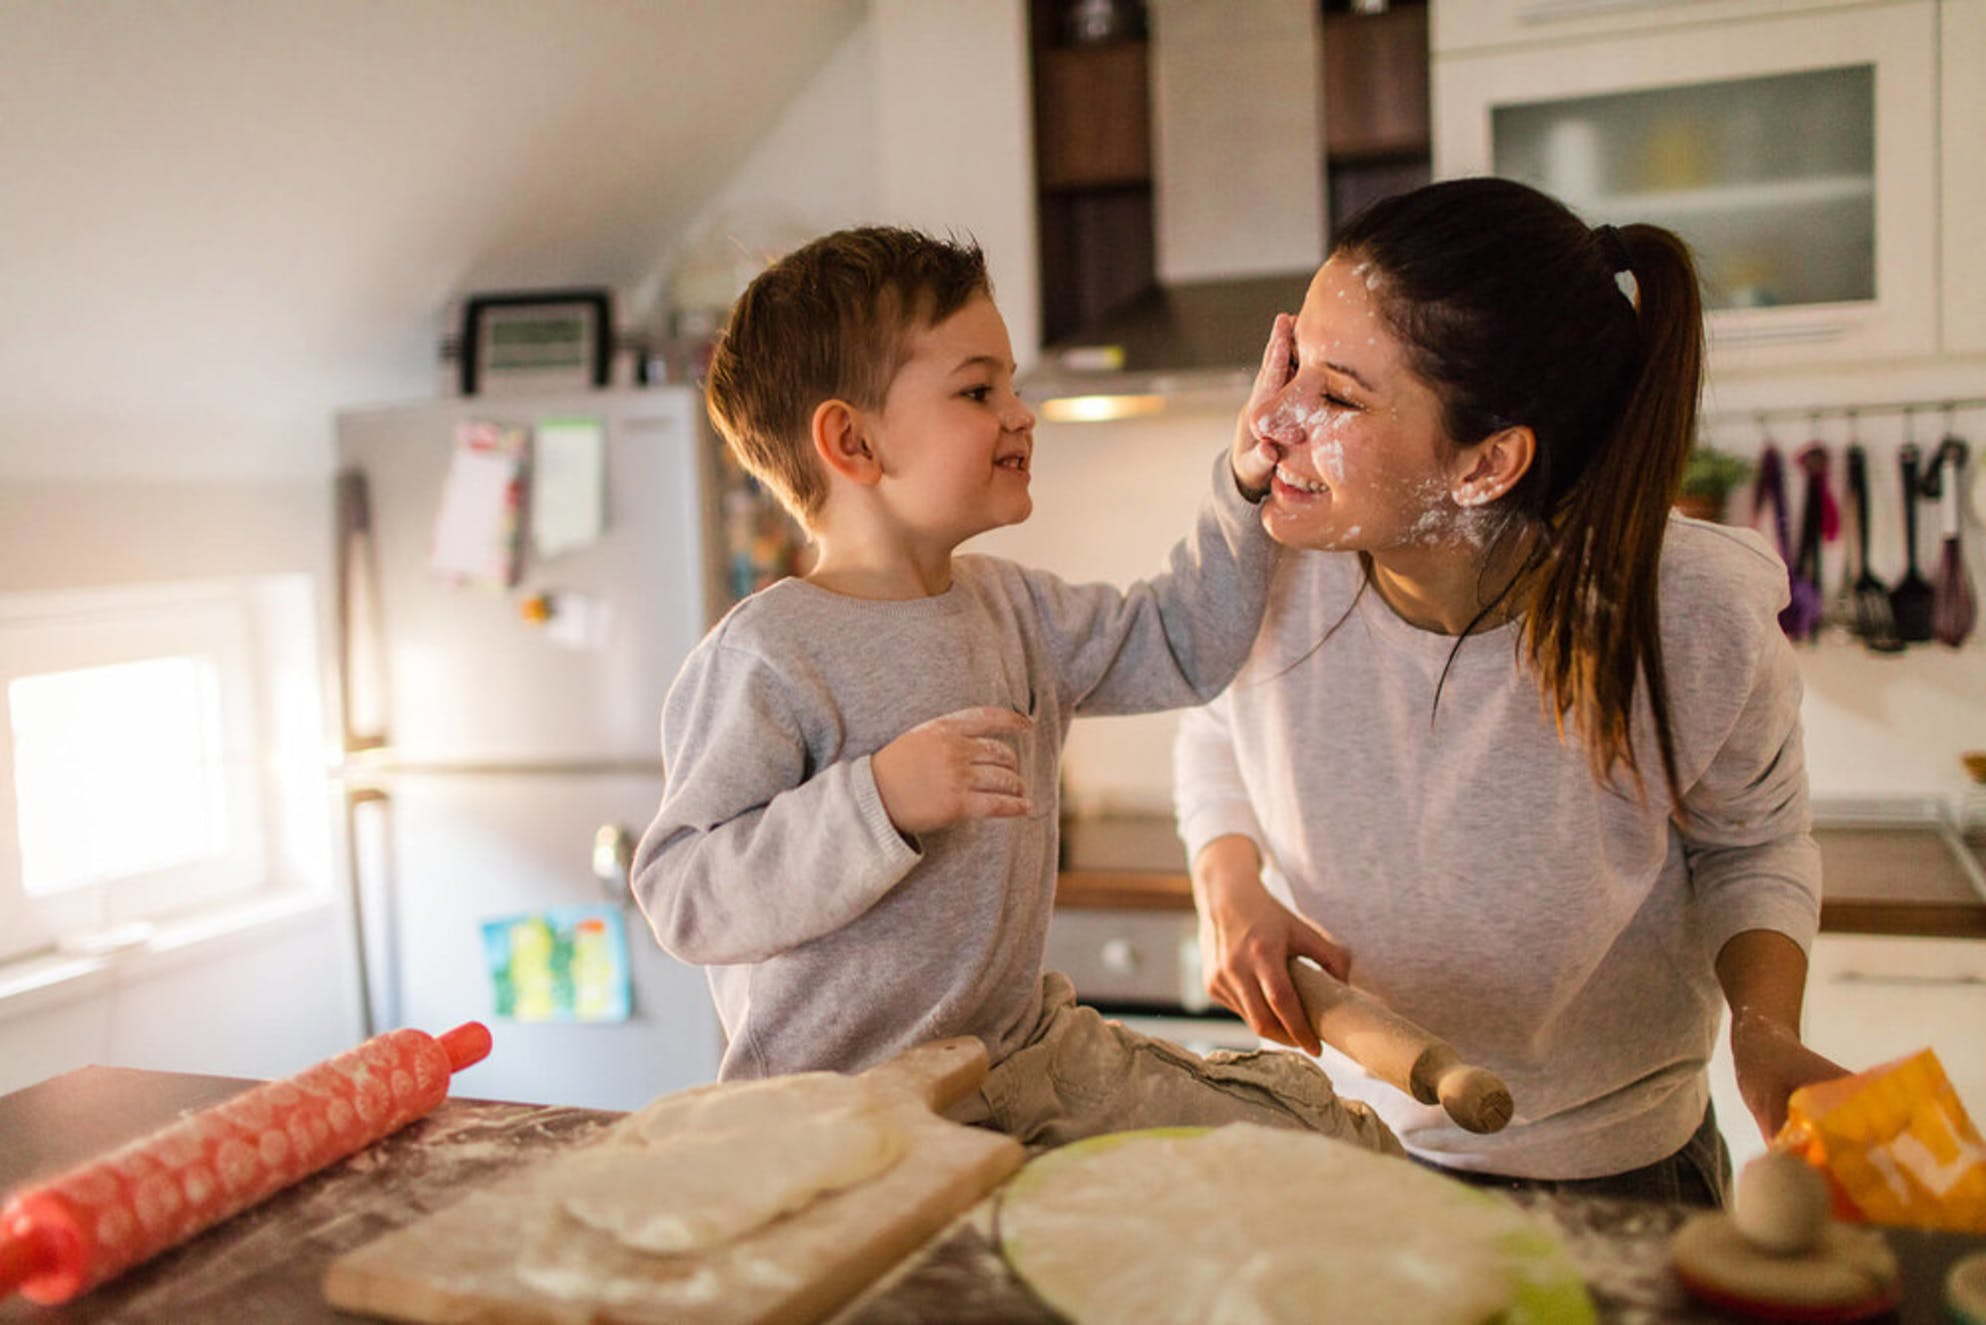 Child and mother having fun in newly purchased house